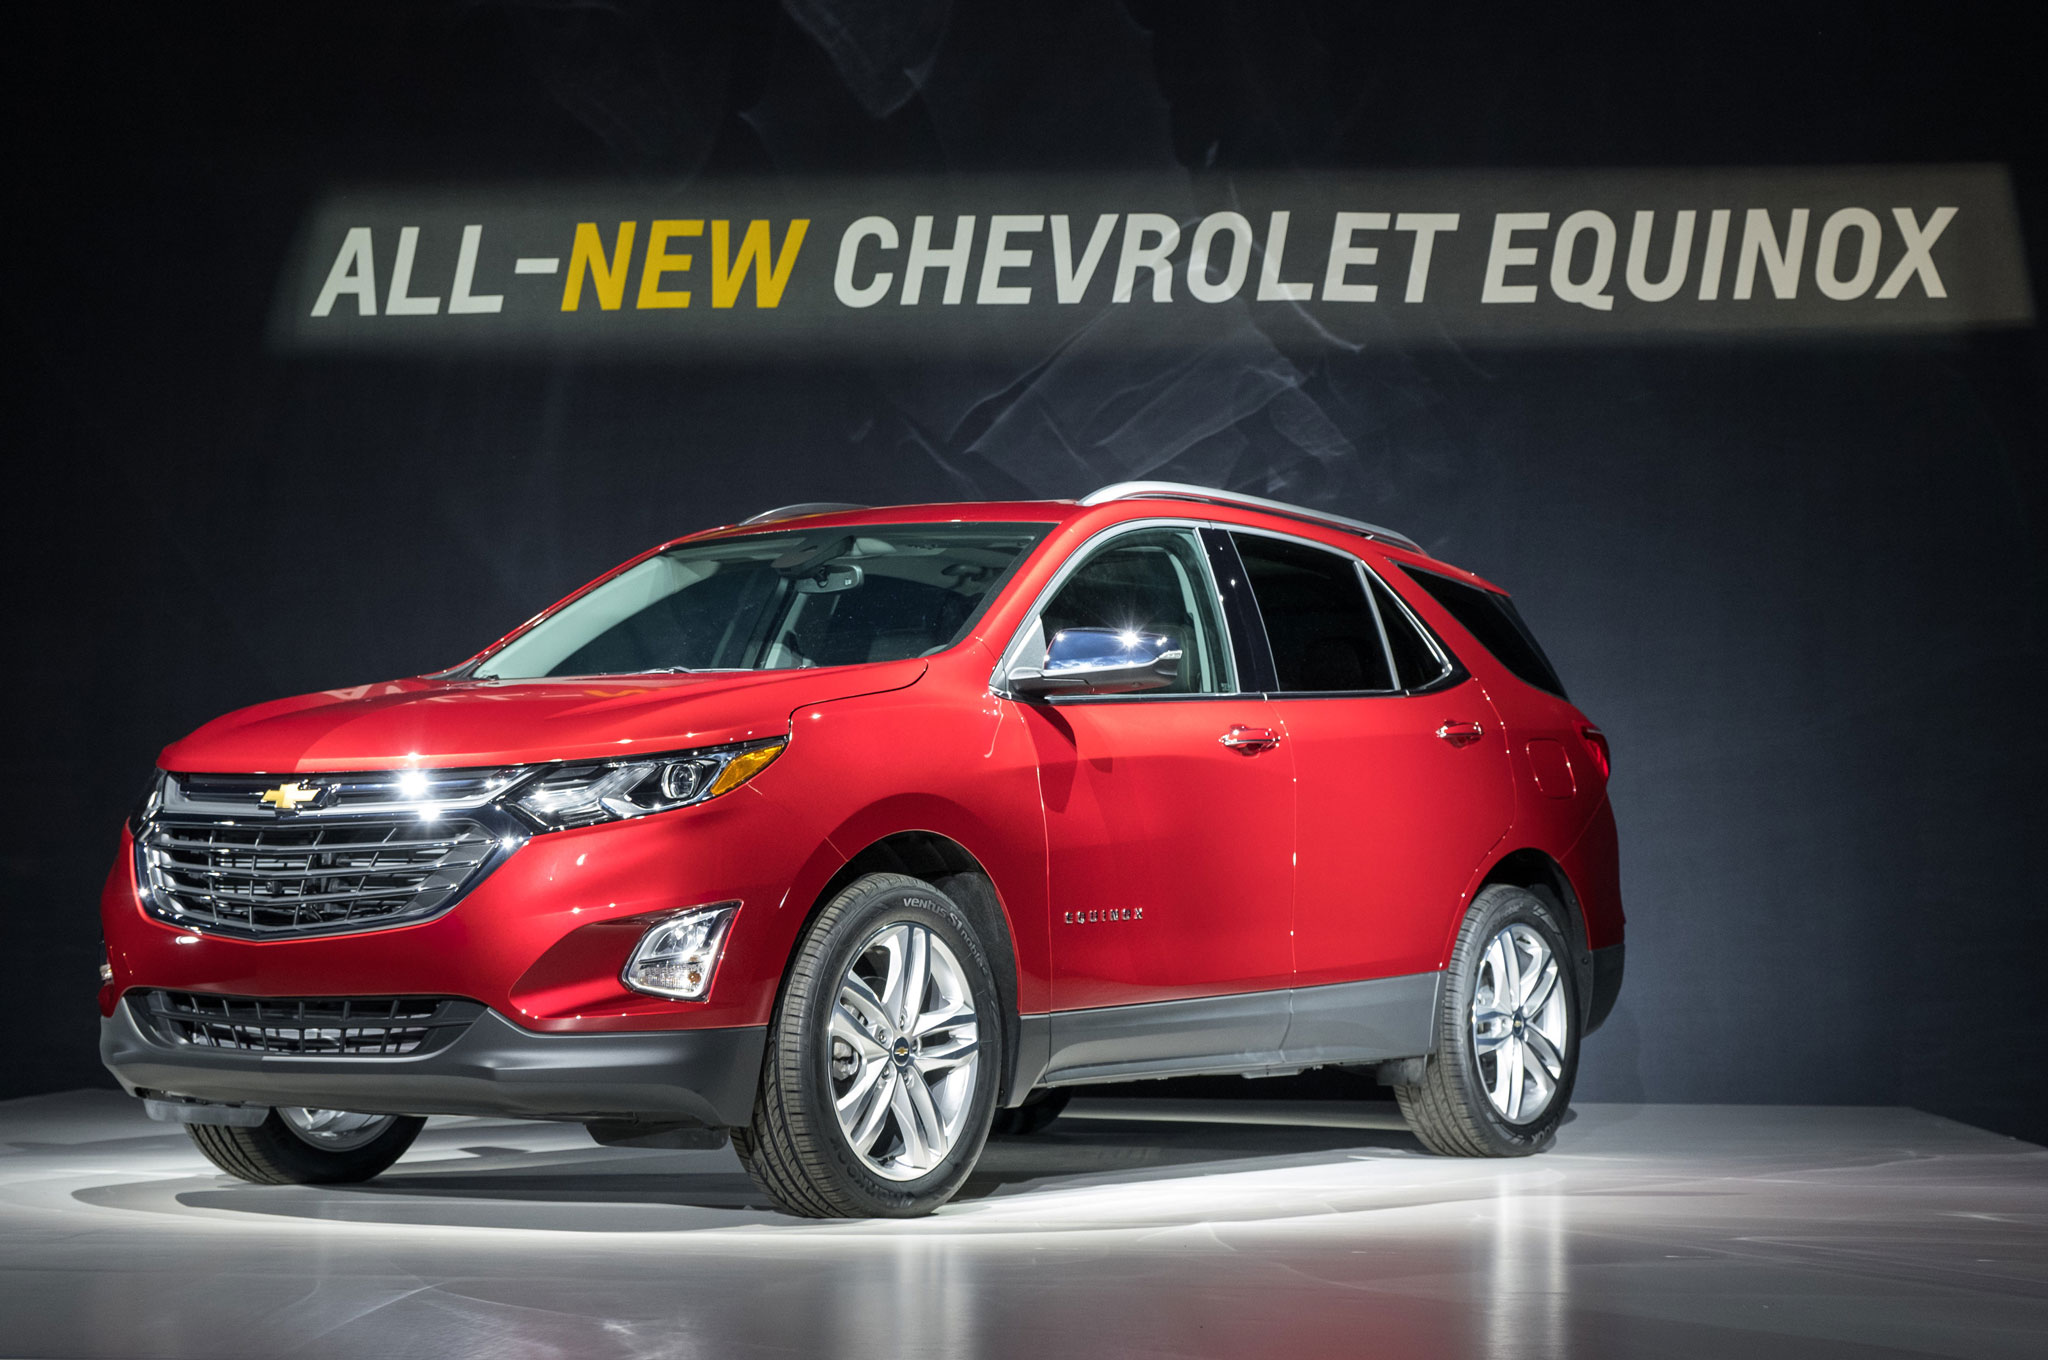 2018 chevrolet equinox reveal front three quarter 03 [ 2048 x 1360 Pixel ]